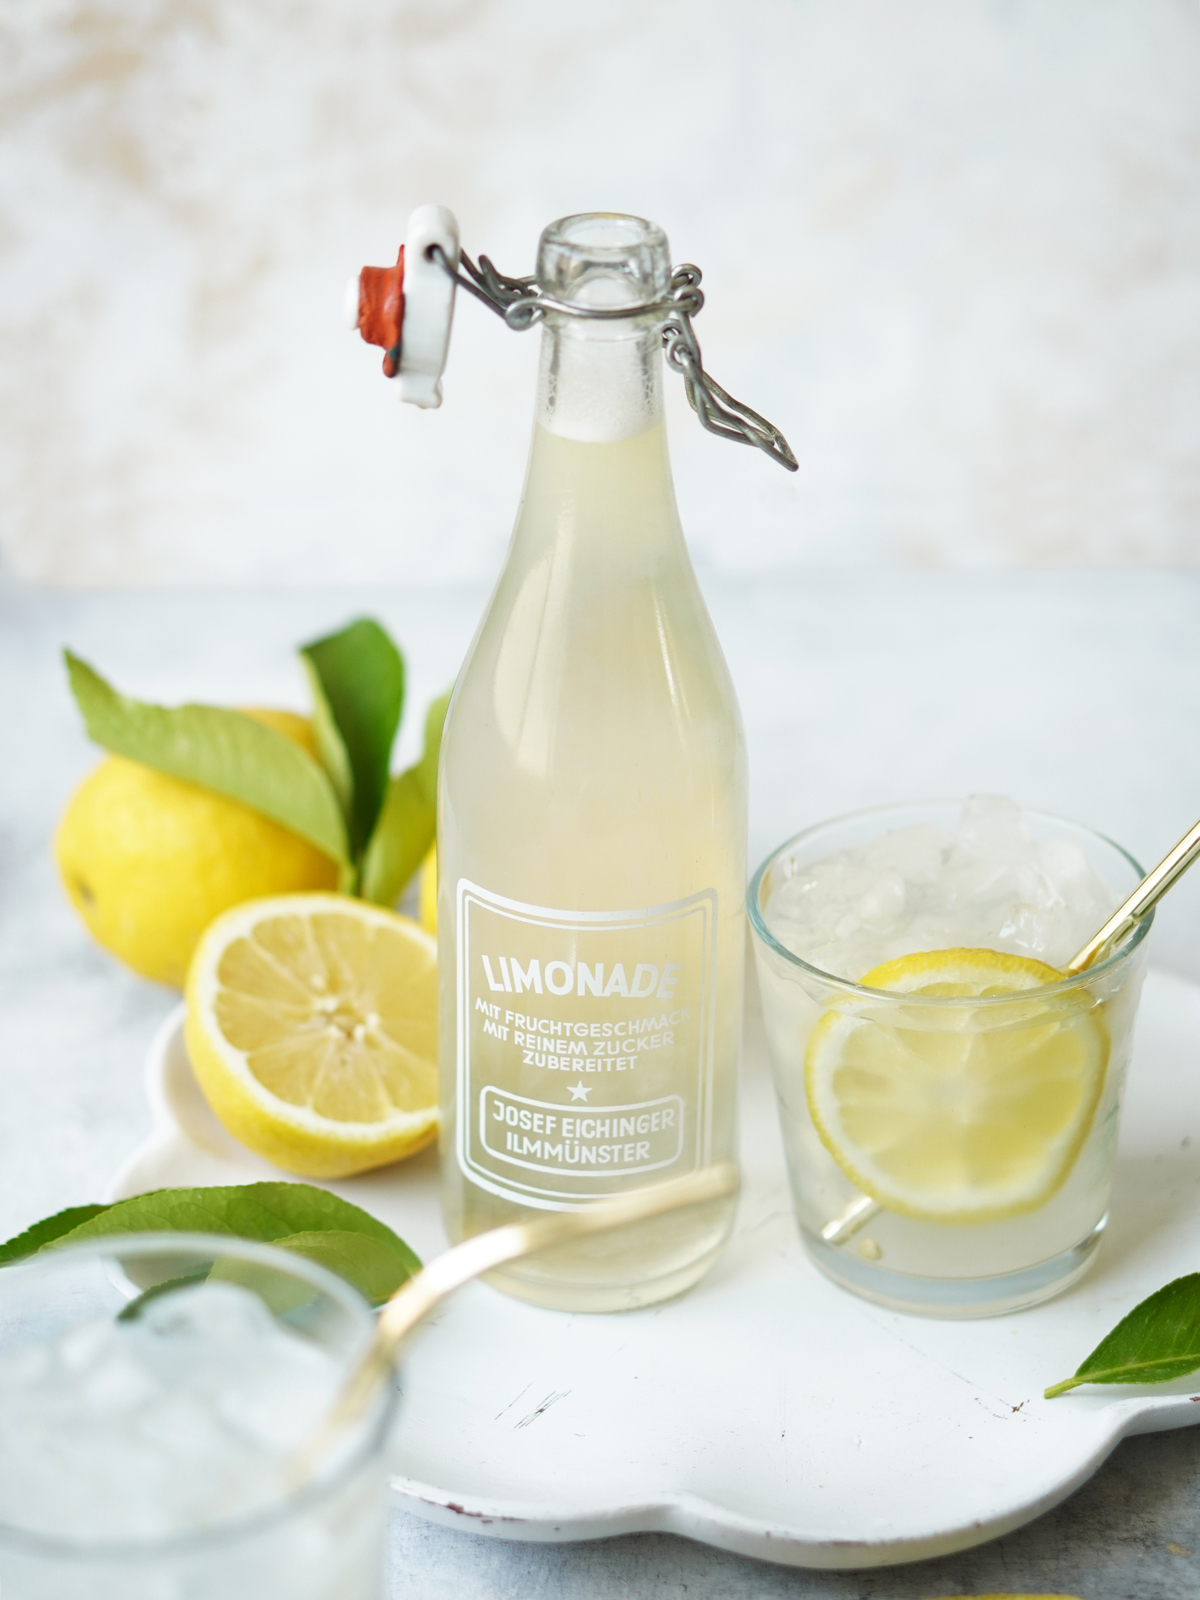 Limonada in a vintage bottle with a glass on the side